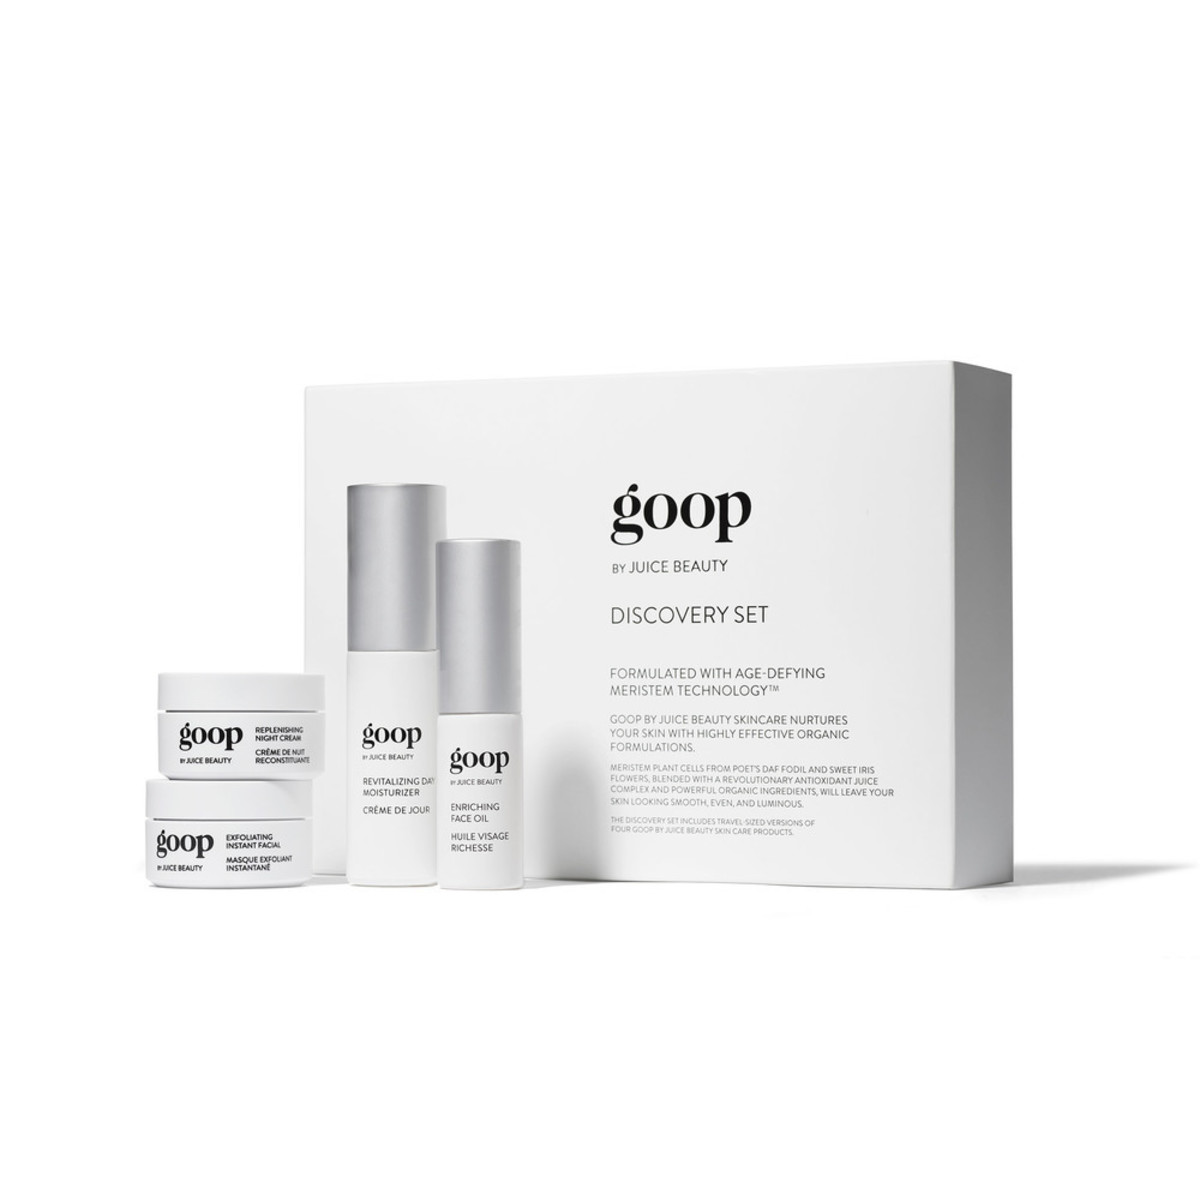 Goop by Juice Beauty Discovery Set, $125